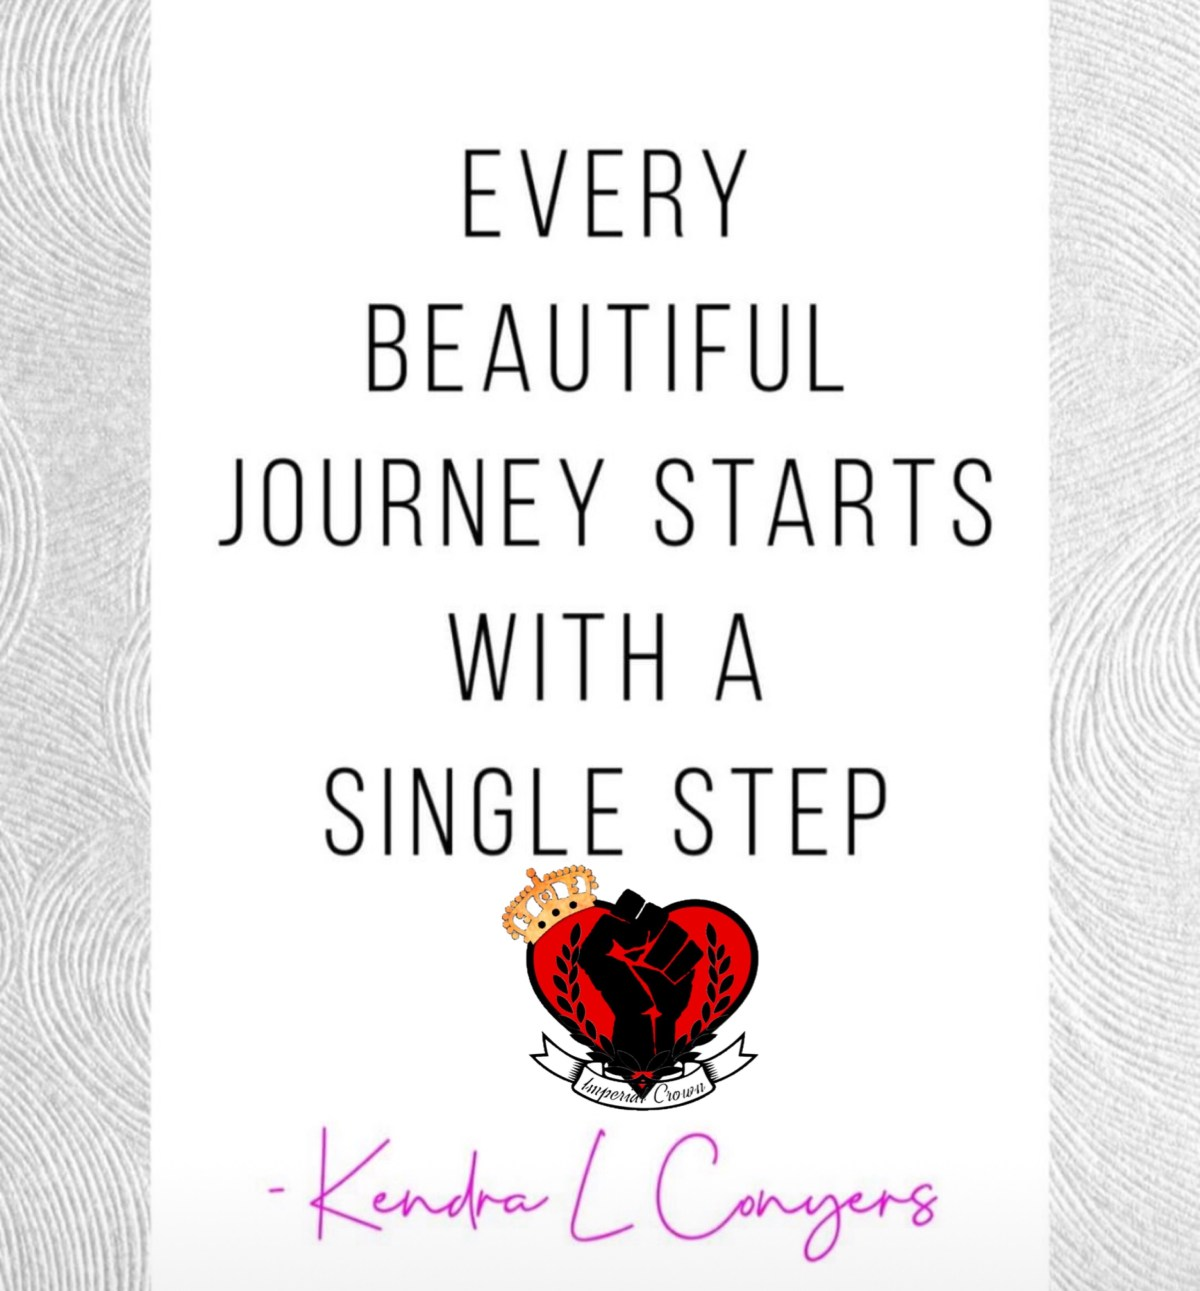 Every beautiful journey starts with a single step